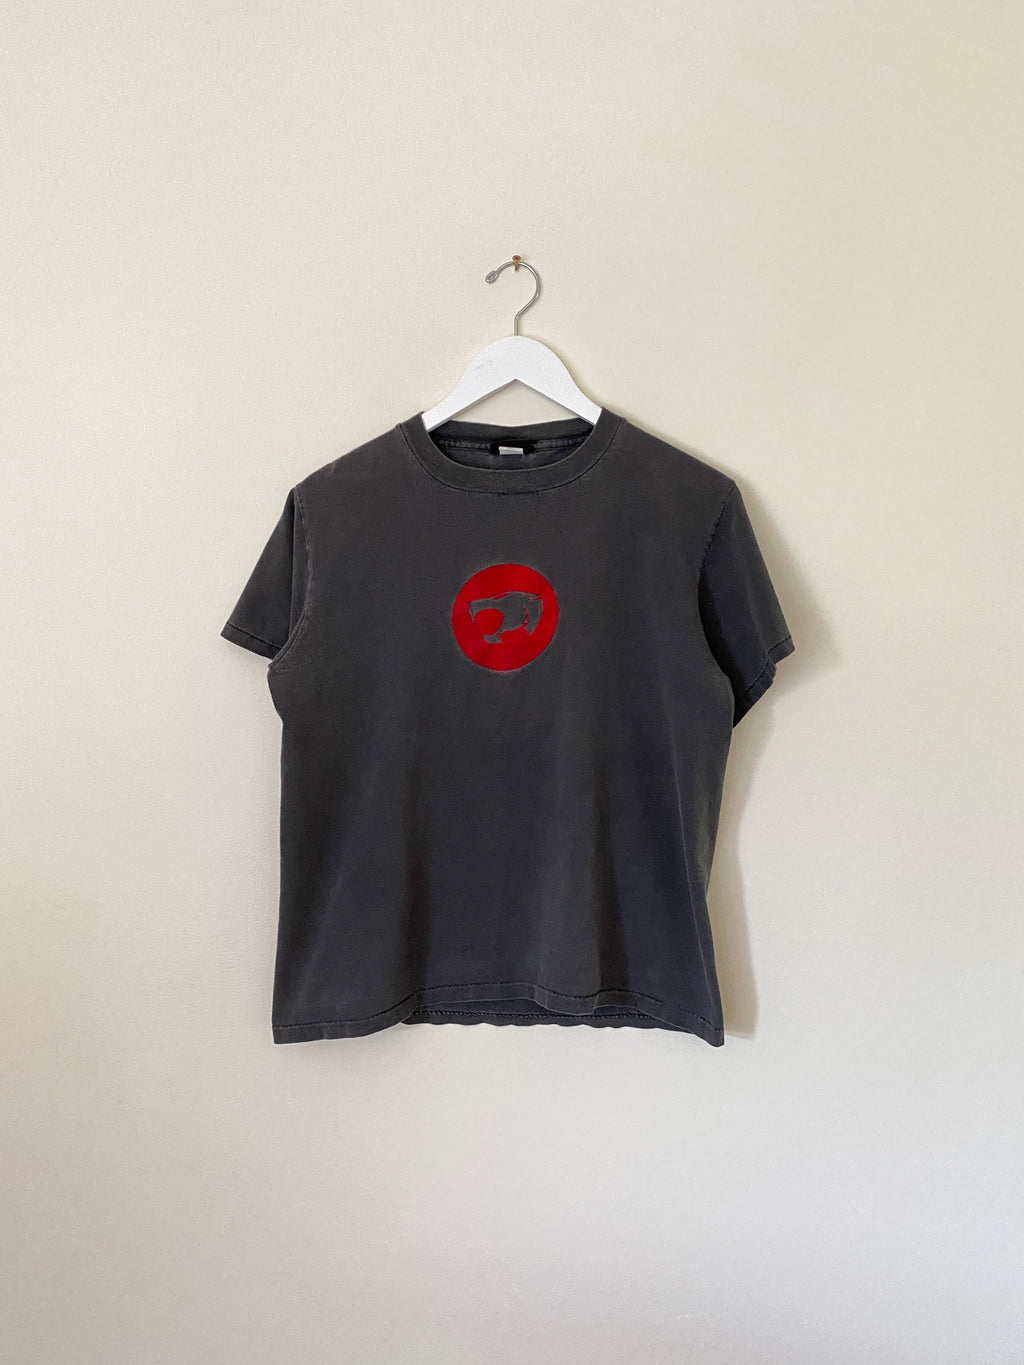 1999 ThunderCats Warner Bros Shirt (M/L)